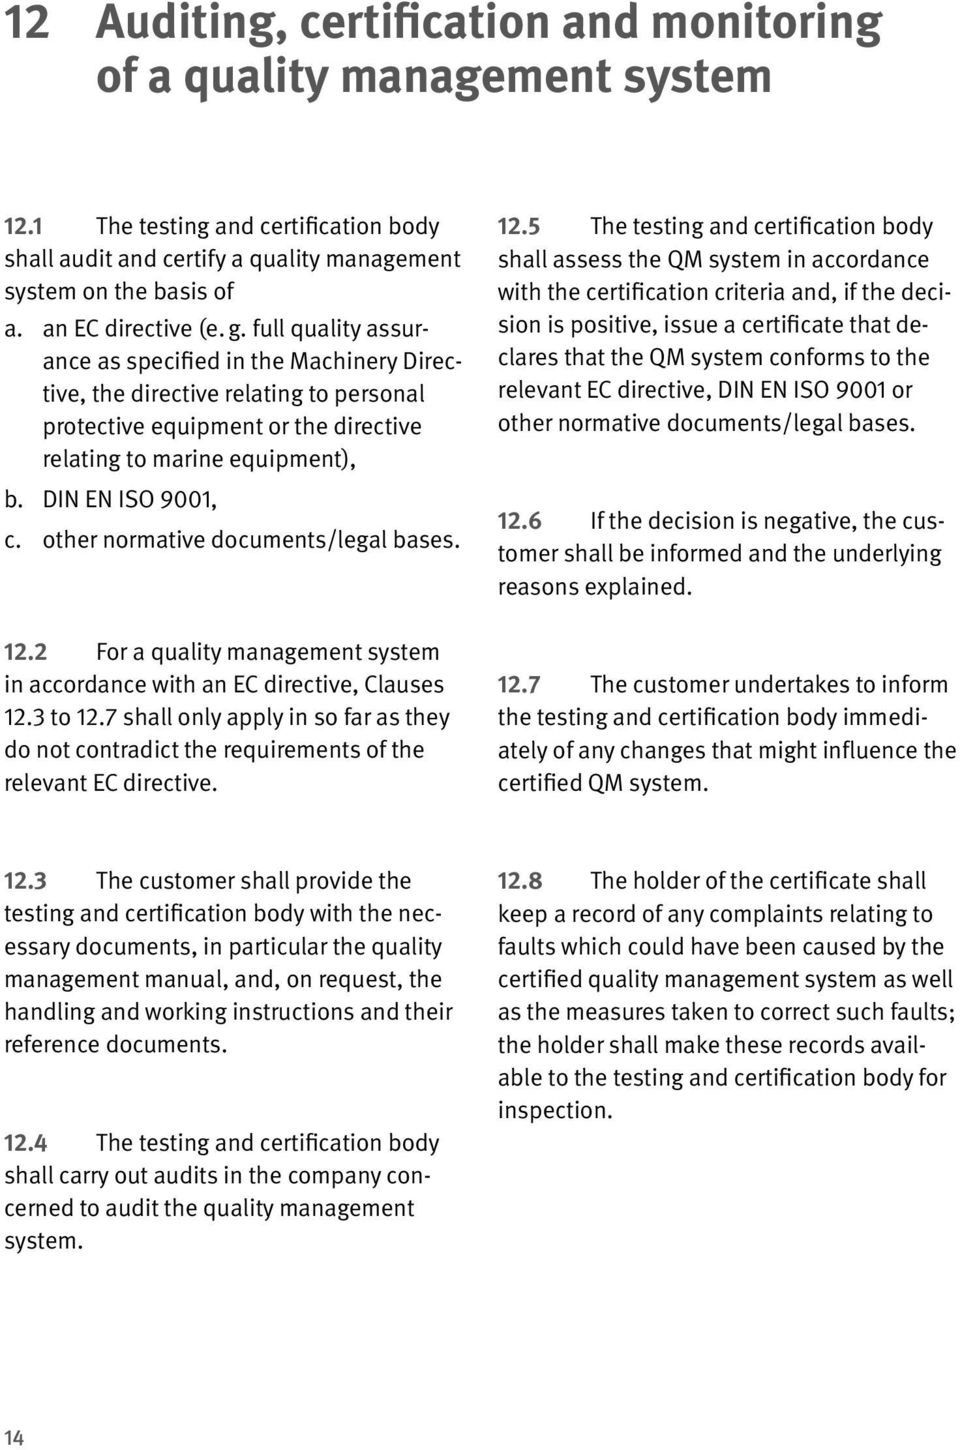 DIN EN ISO 9001, c. other normative documents/legal bases. 12.2 For a quality management system in accordance with an EC directive, Clauses 12.3 to 12.